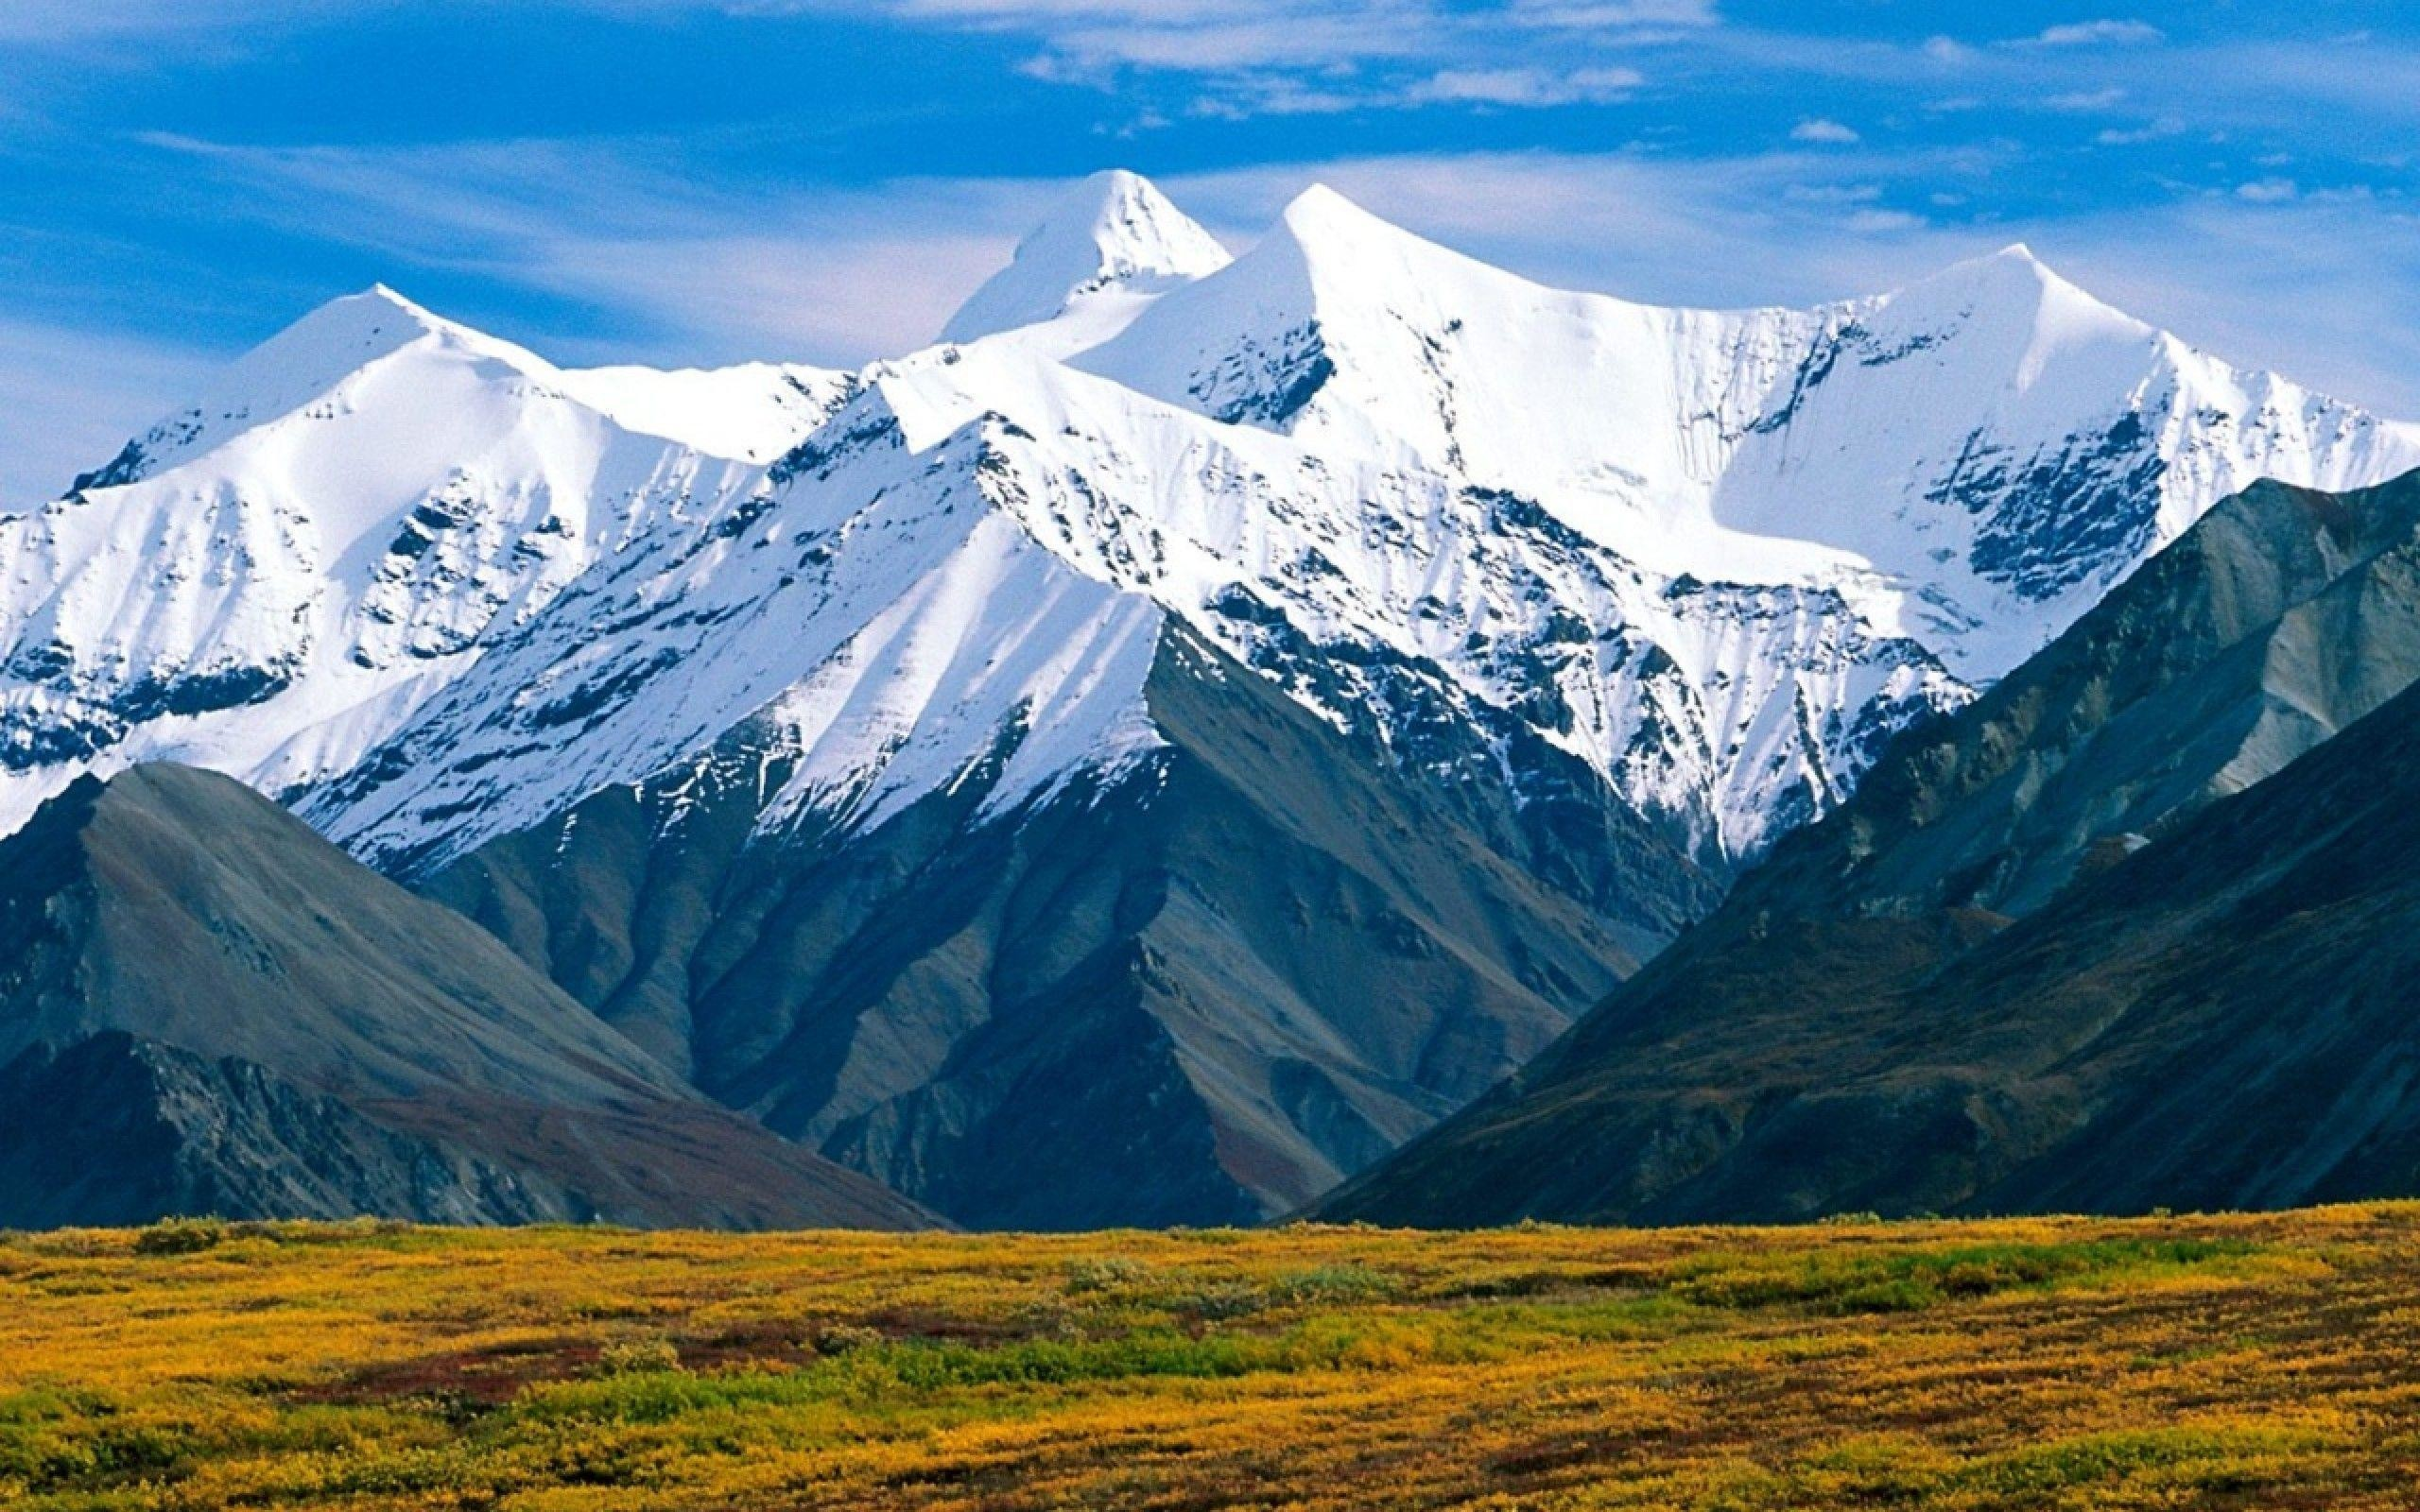 Park With The Alaska Range And Mt Mckinley In The Alaska